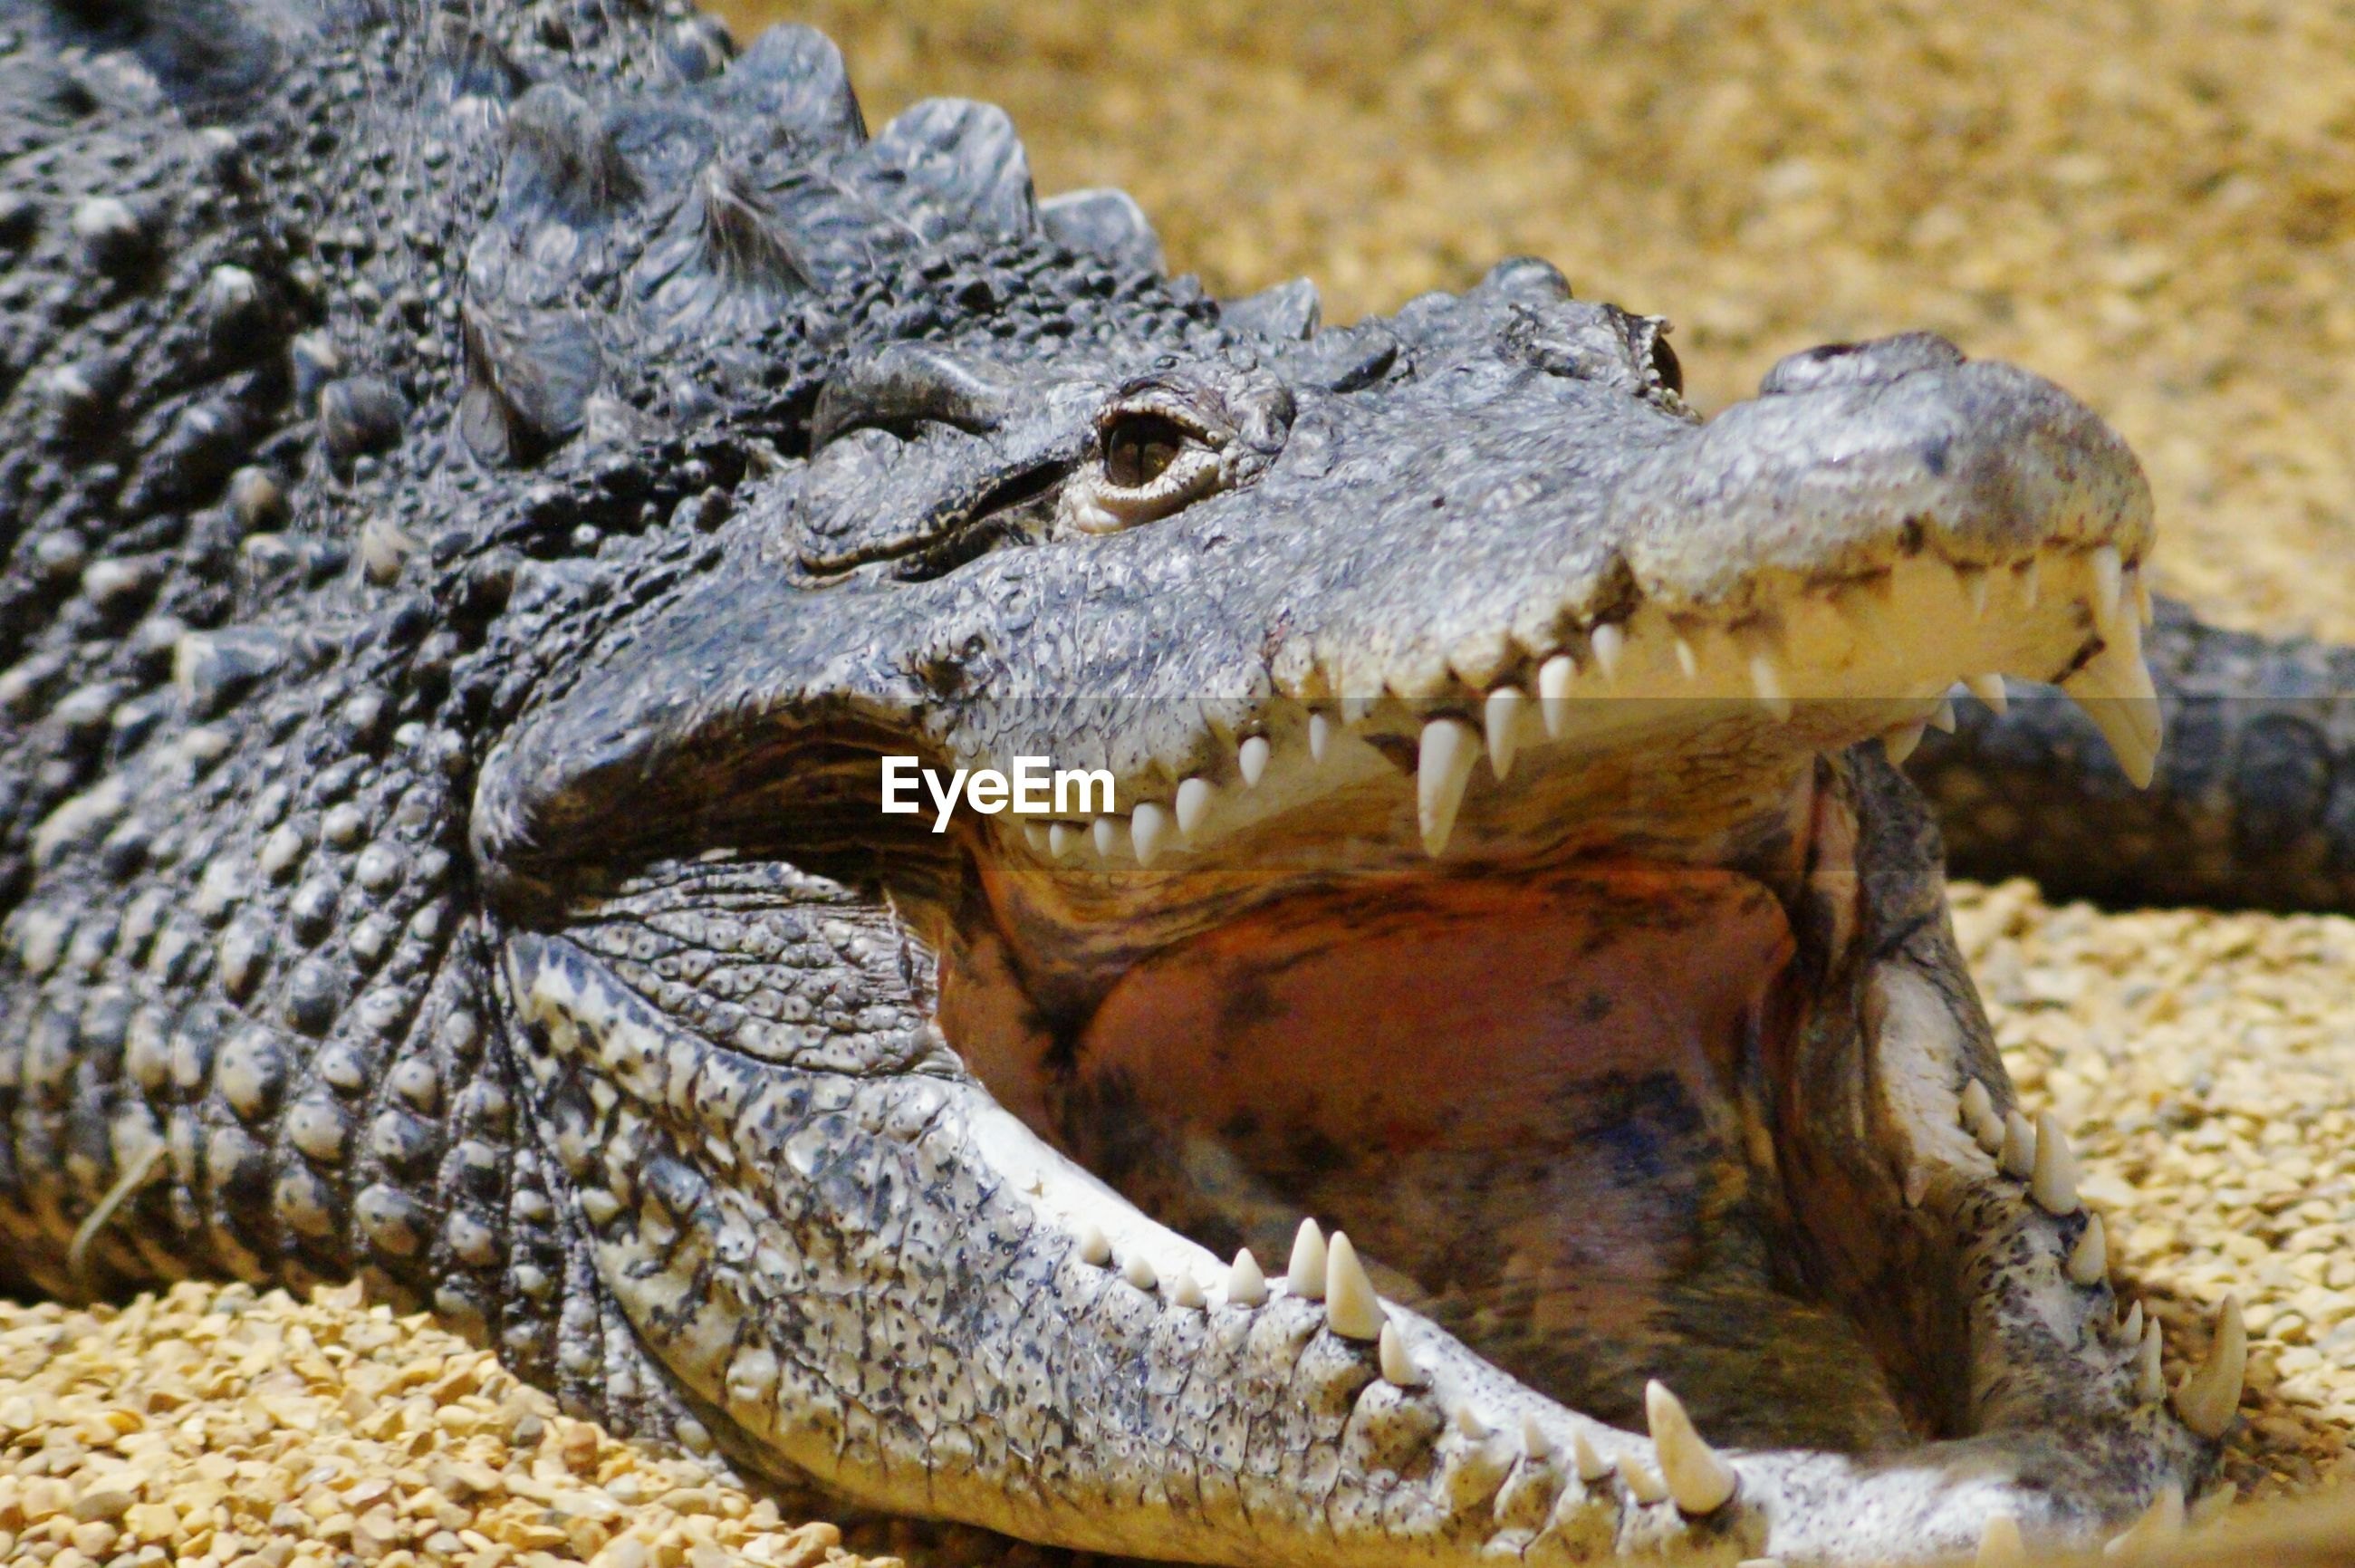 Close-up of crocodile with mouth open on field